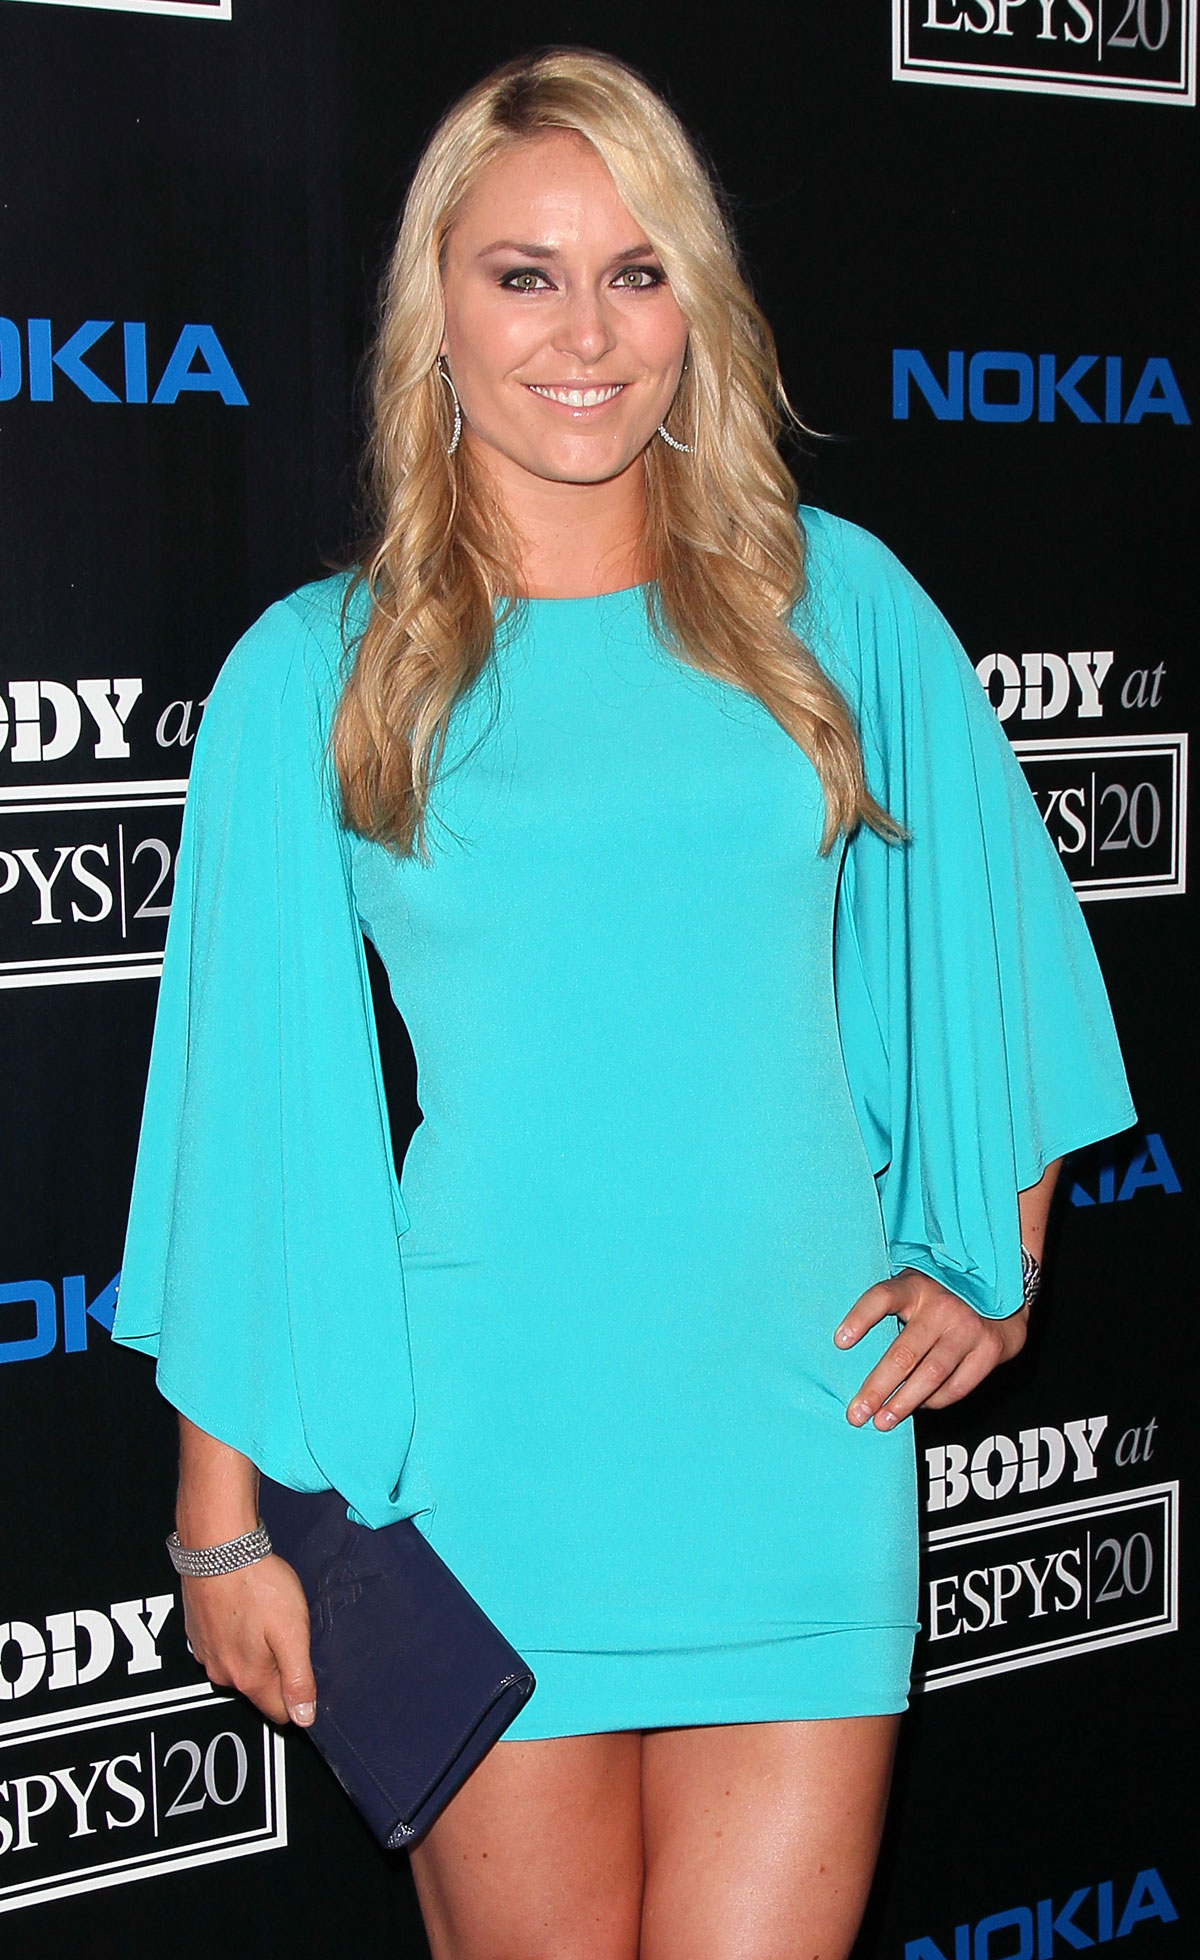 LINDSEY VONN at ESPN's Body Issue Party in Los Angeles